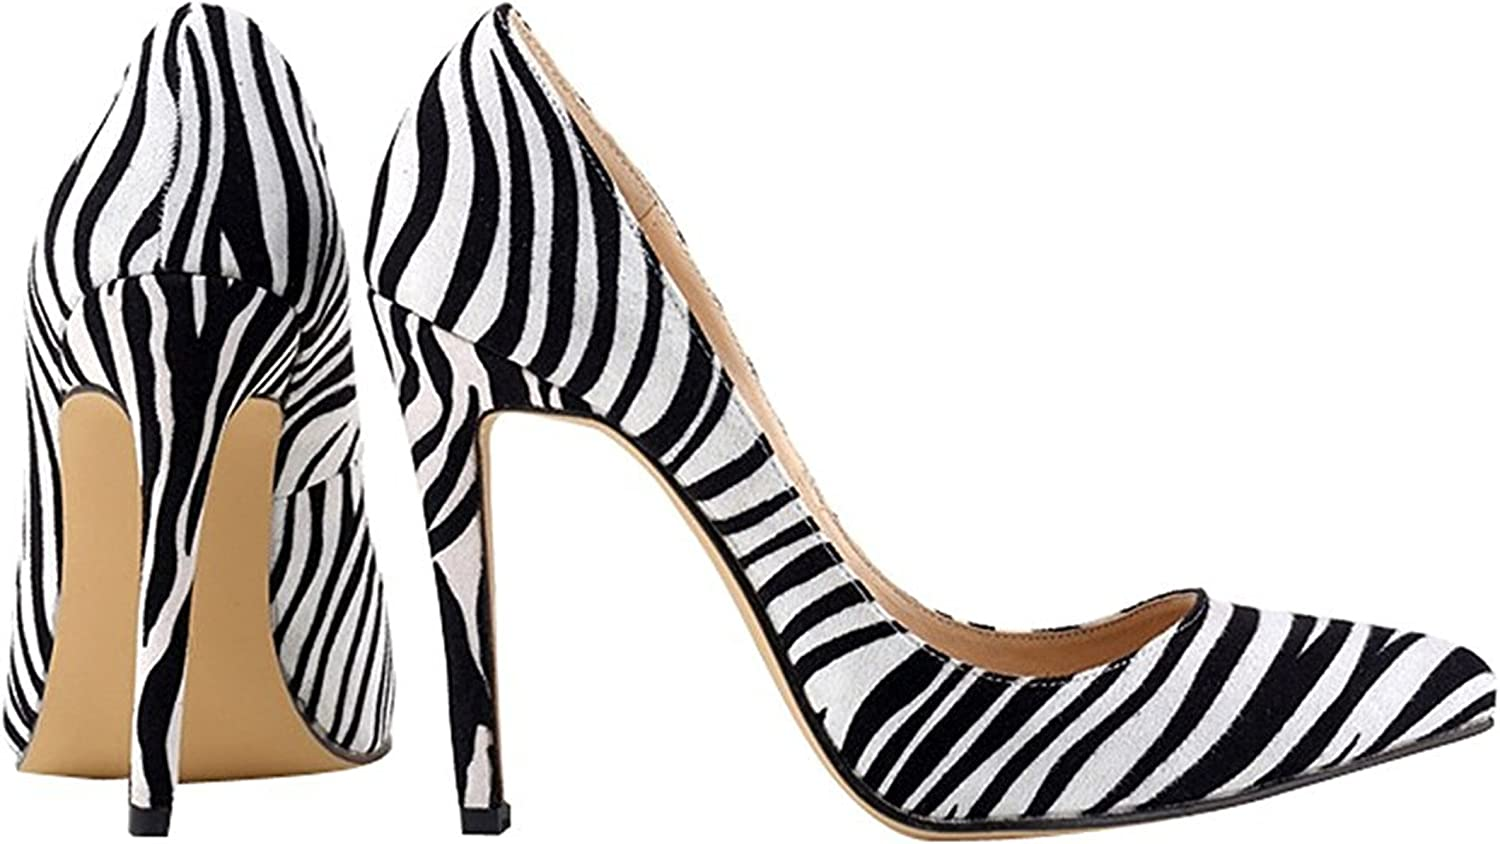 WANabcMAN Comfortable Women's Pattern Pointy Stiletto High Heels shoes Zebra Stripe 42